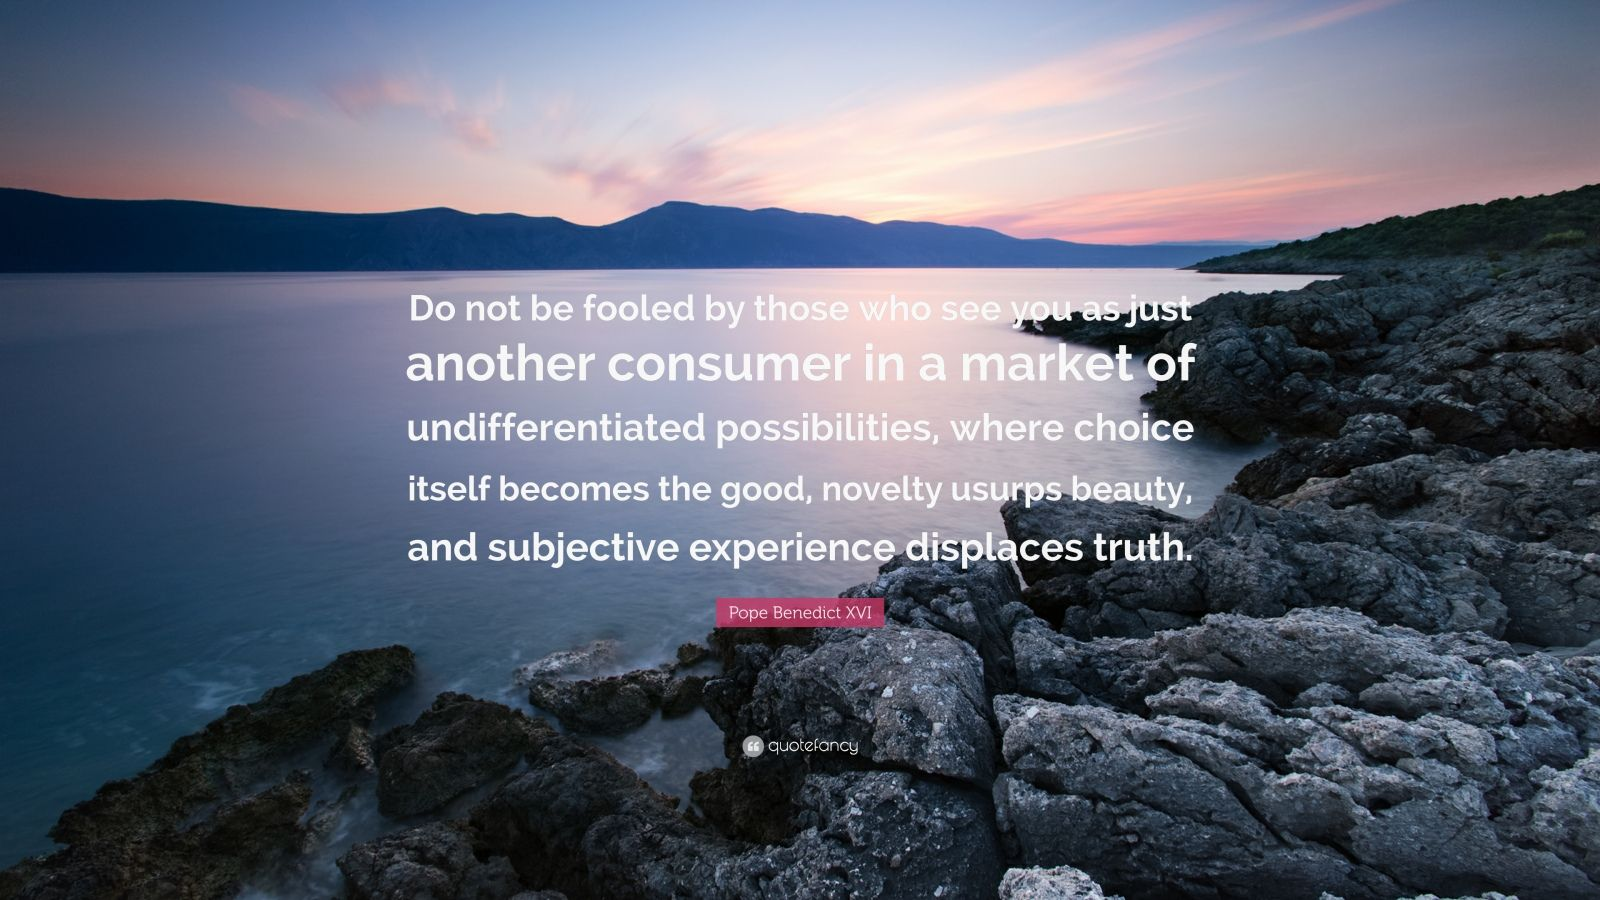 """Pope Benedict XVI Quote: """"Do not be fooled by those who see you as just another consumer in a market of undifferentiated possibilities, where choice itself becomes the good, novelty usurps beauty, and subjective experience displaces truth."""""""